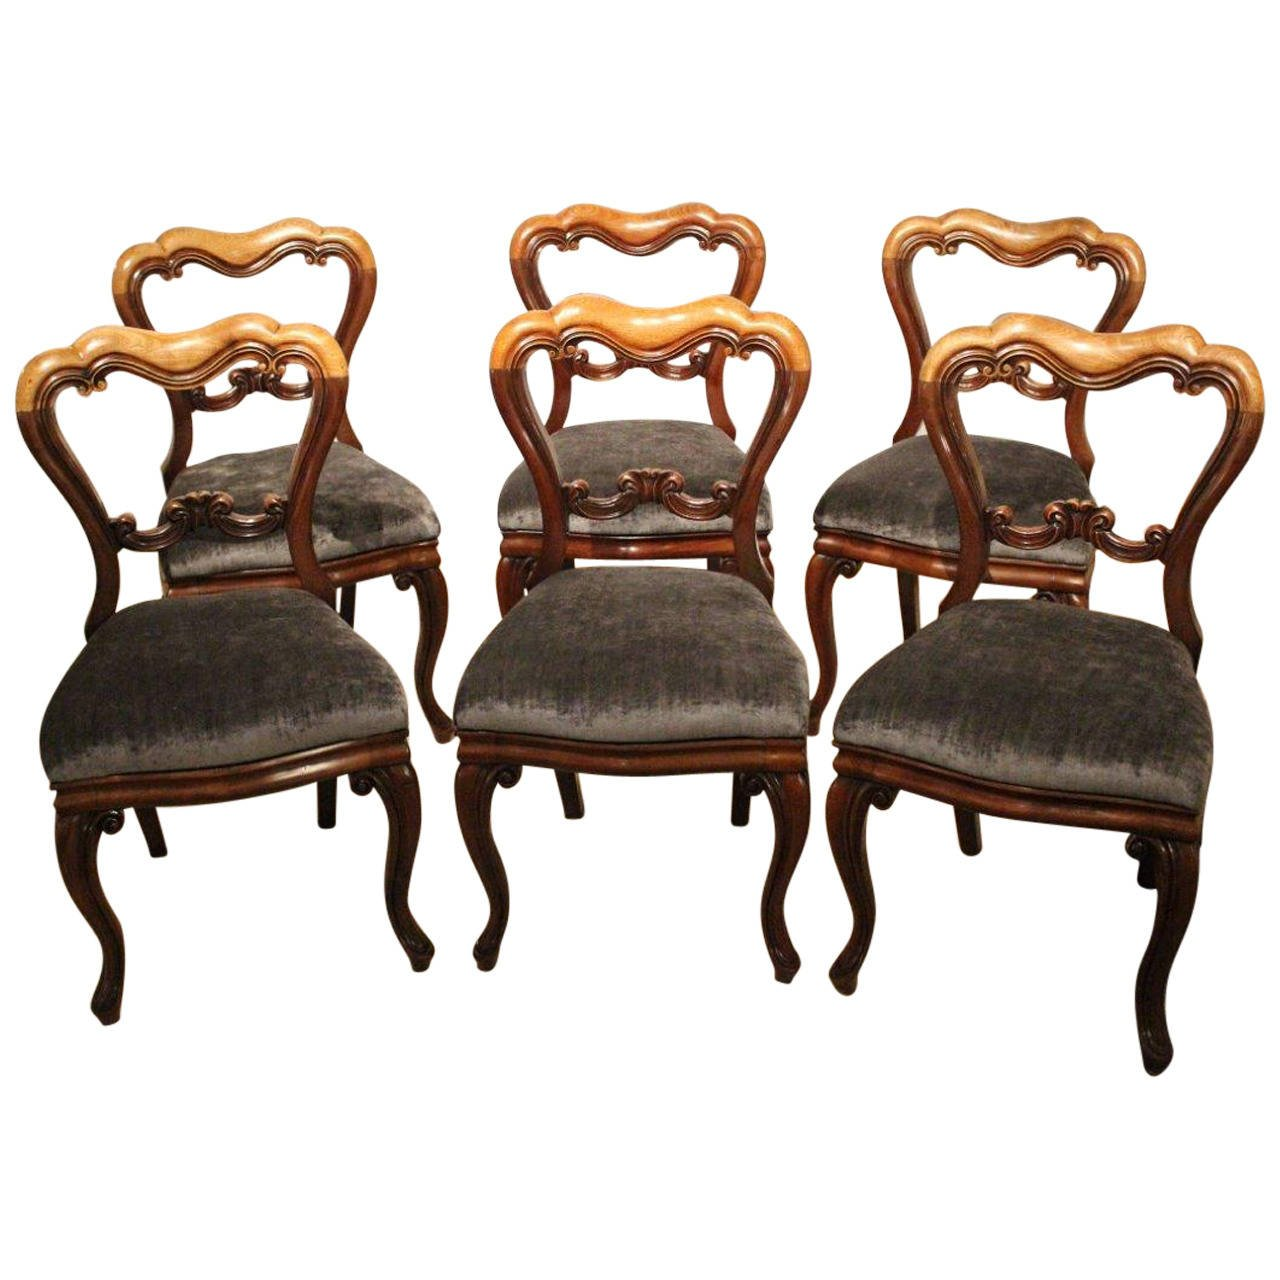 Buying Experience Victorian Era Furniture In EBay